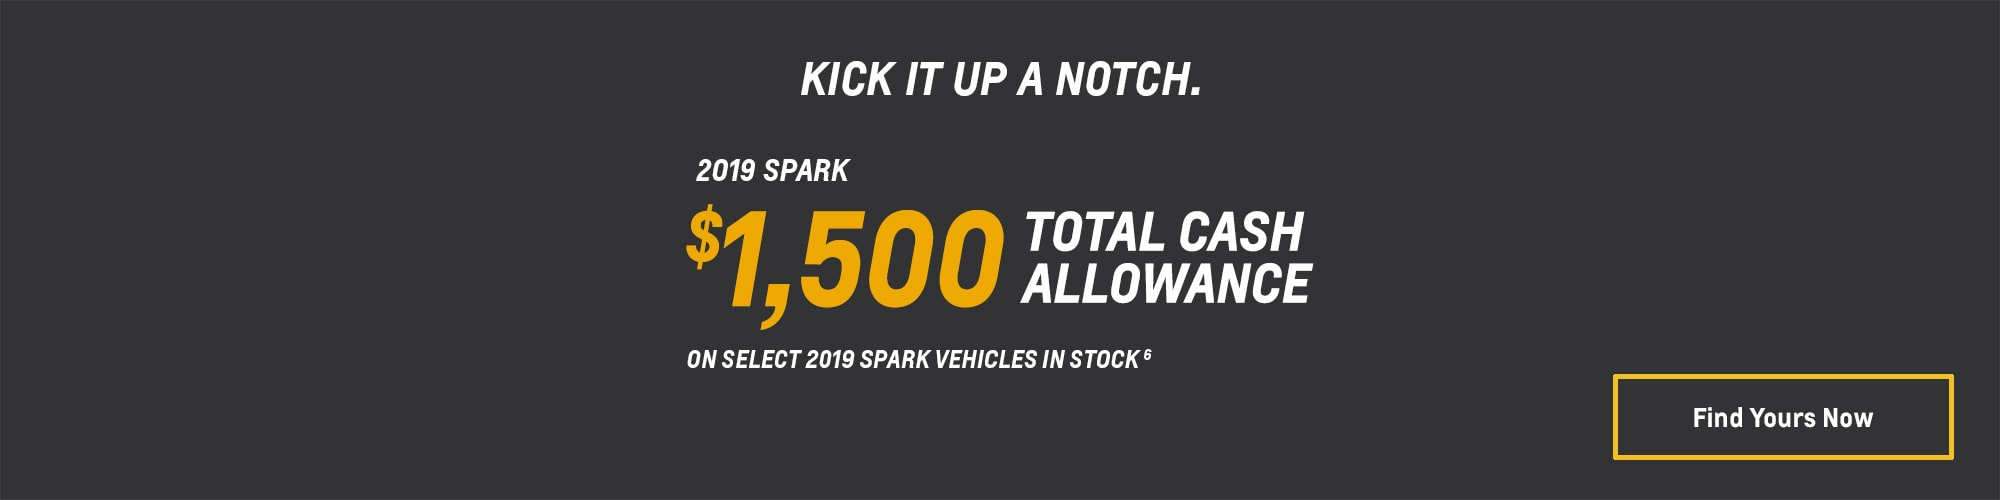 2019 Spark Subcompact Car Deals and Offers